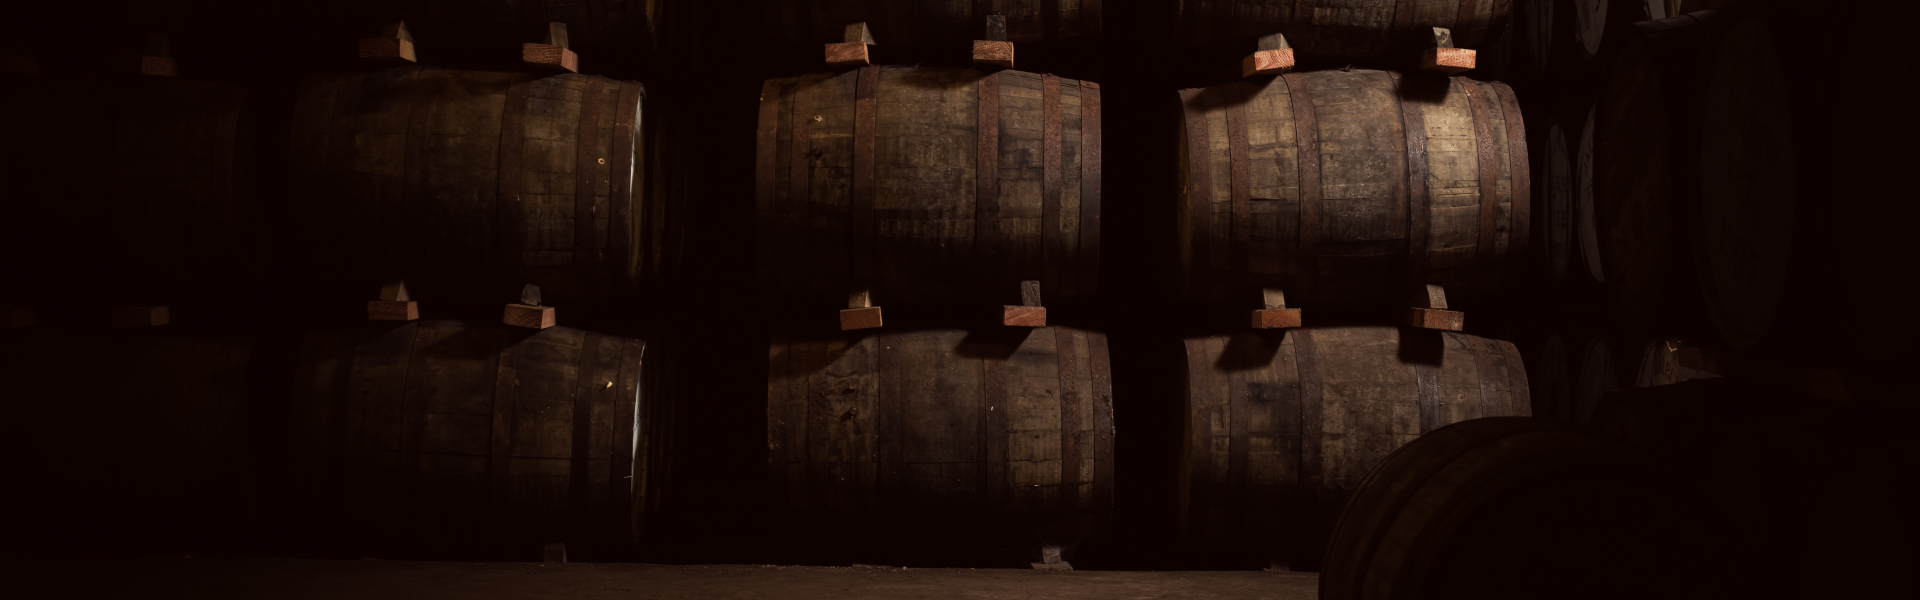 Our malt is crafted slowly and is matured at the distillery in traditional dunnage warehouses on earthen floors.